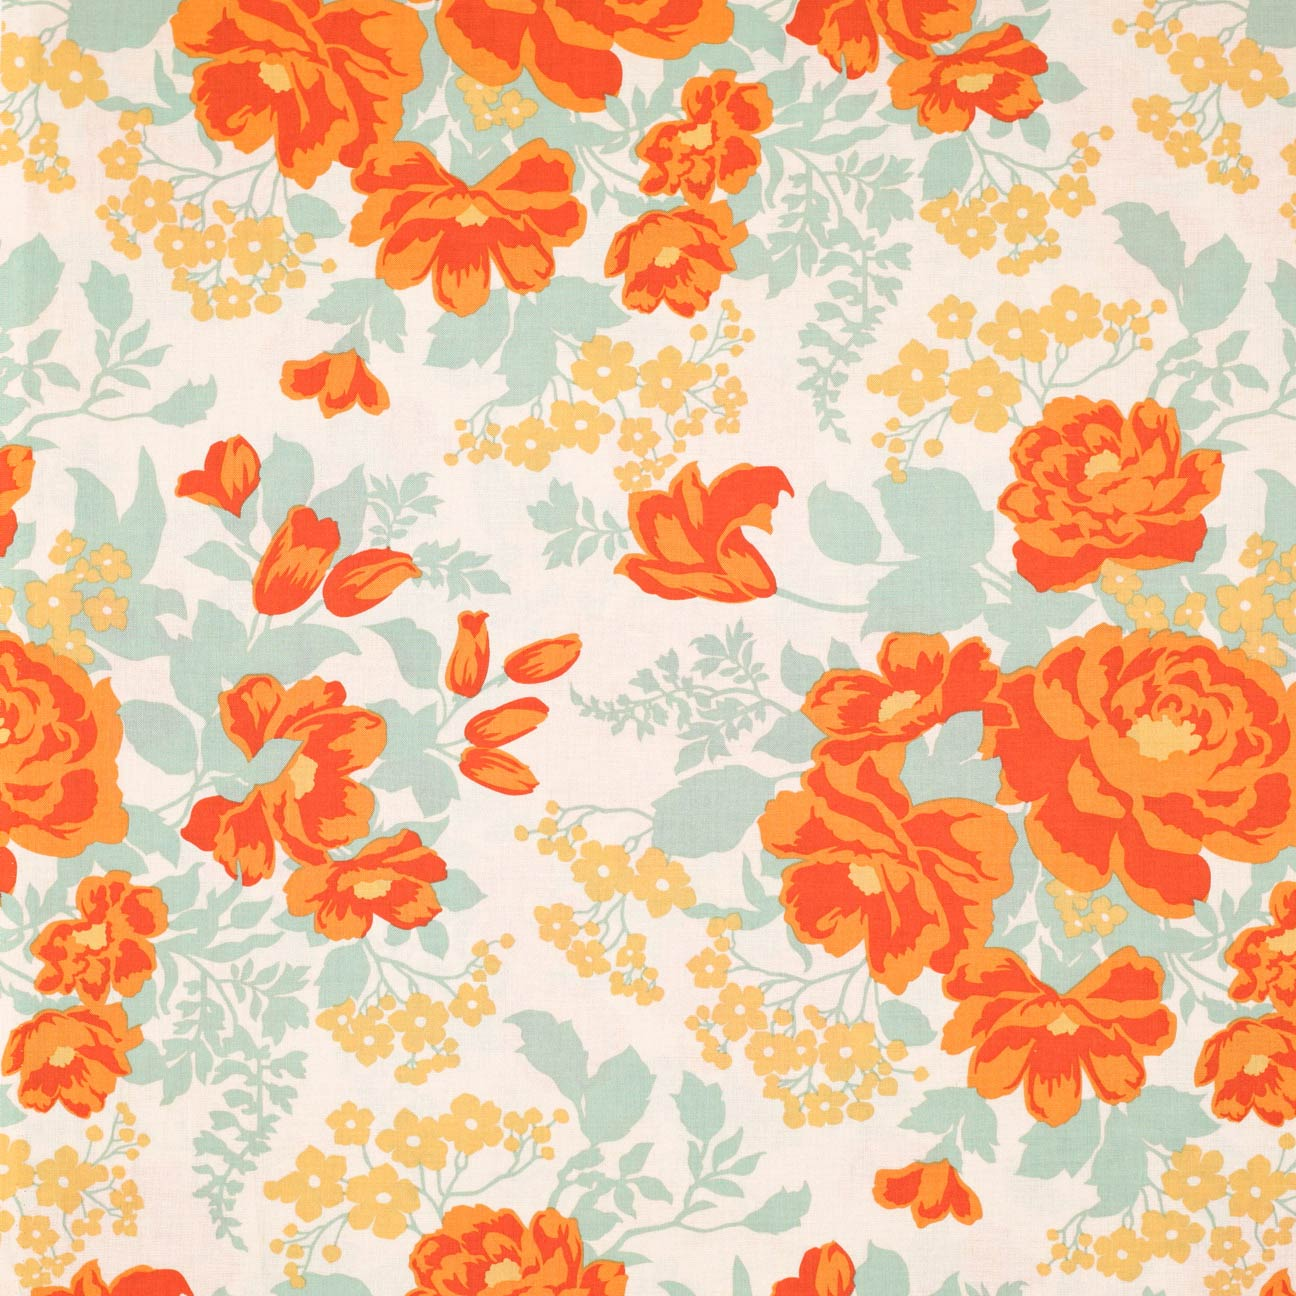 Wallpapers, Orange And Floral On Pinterest